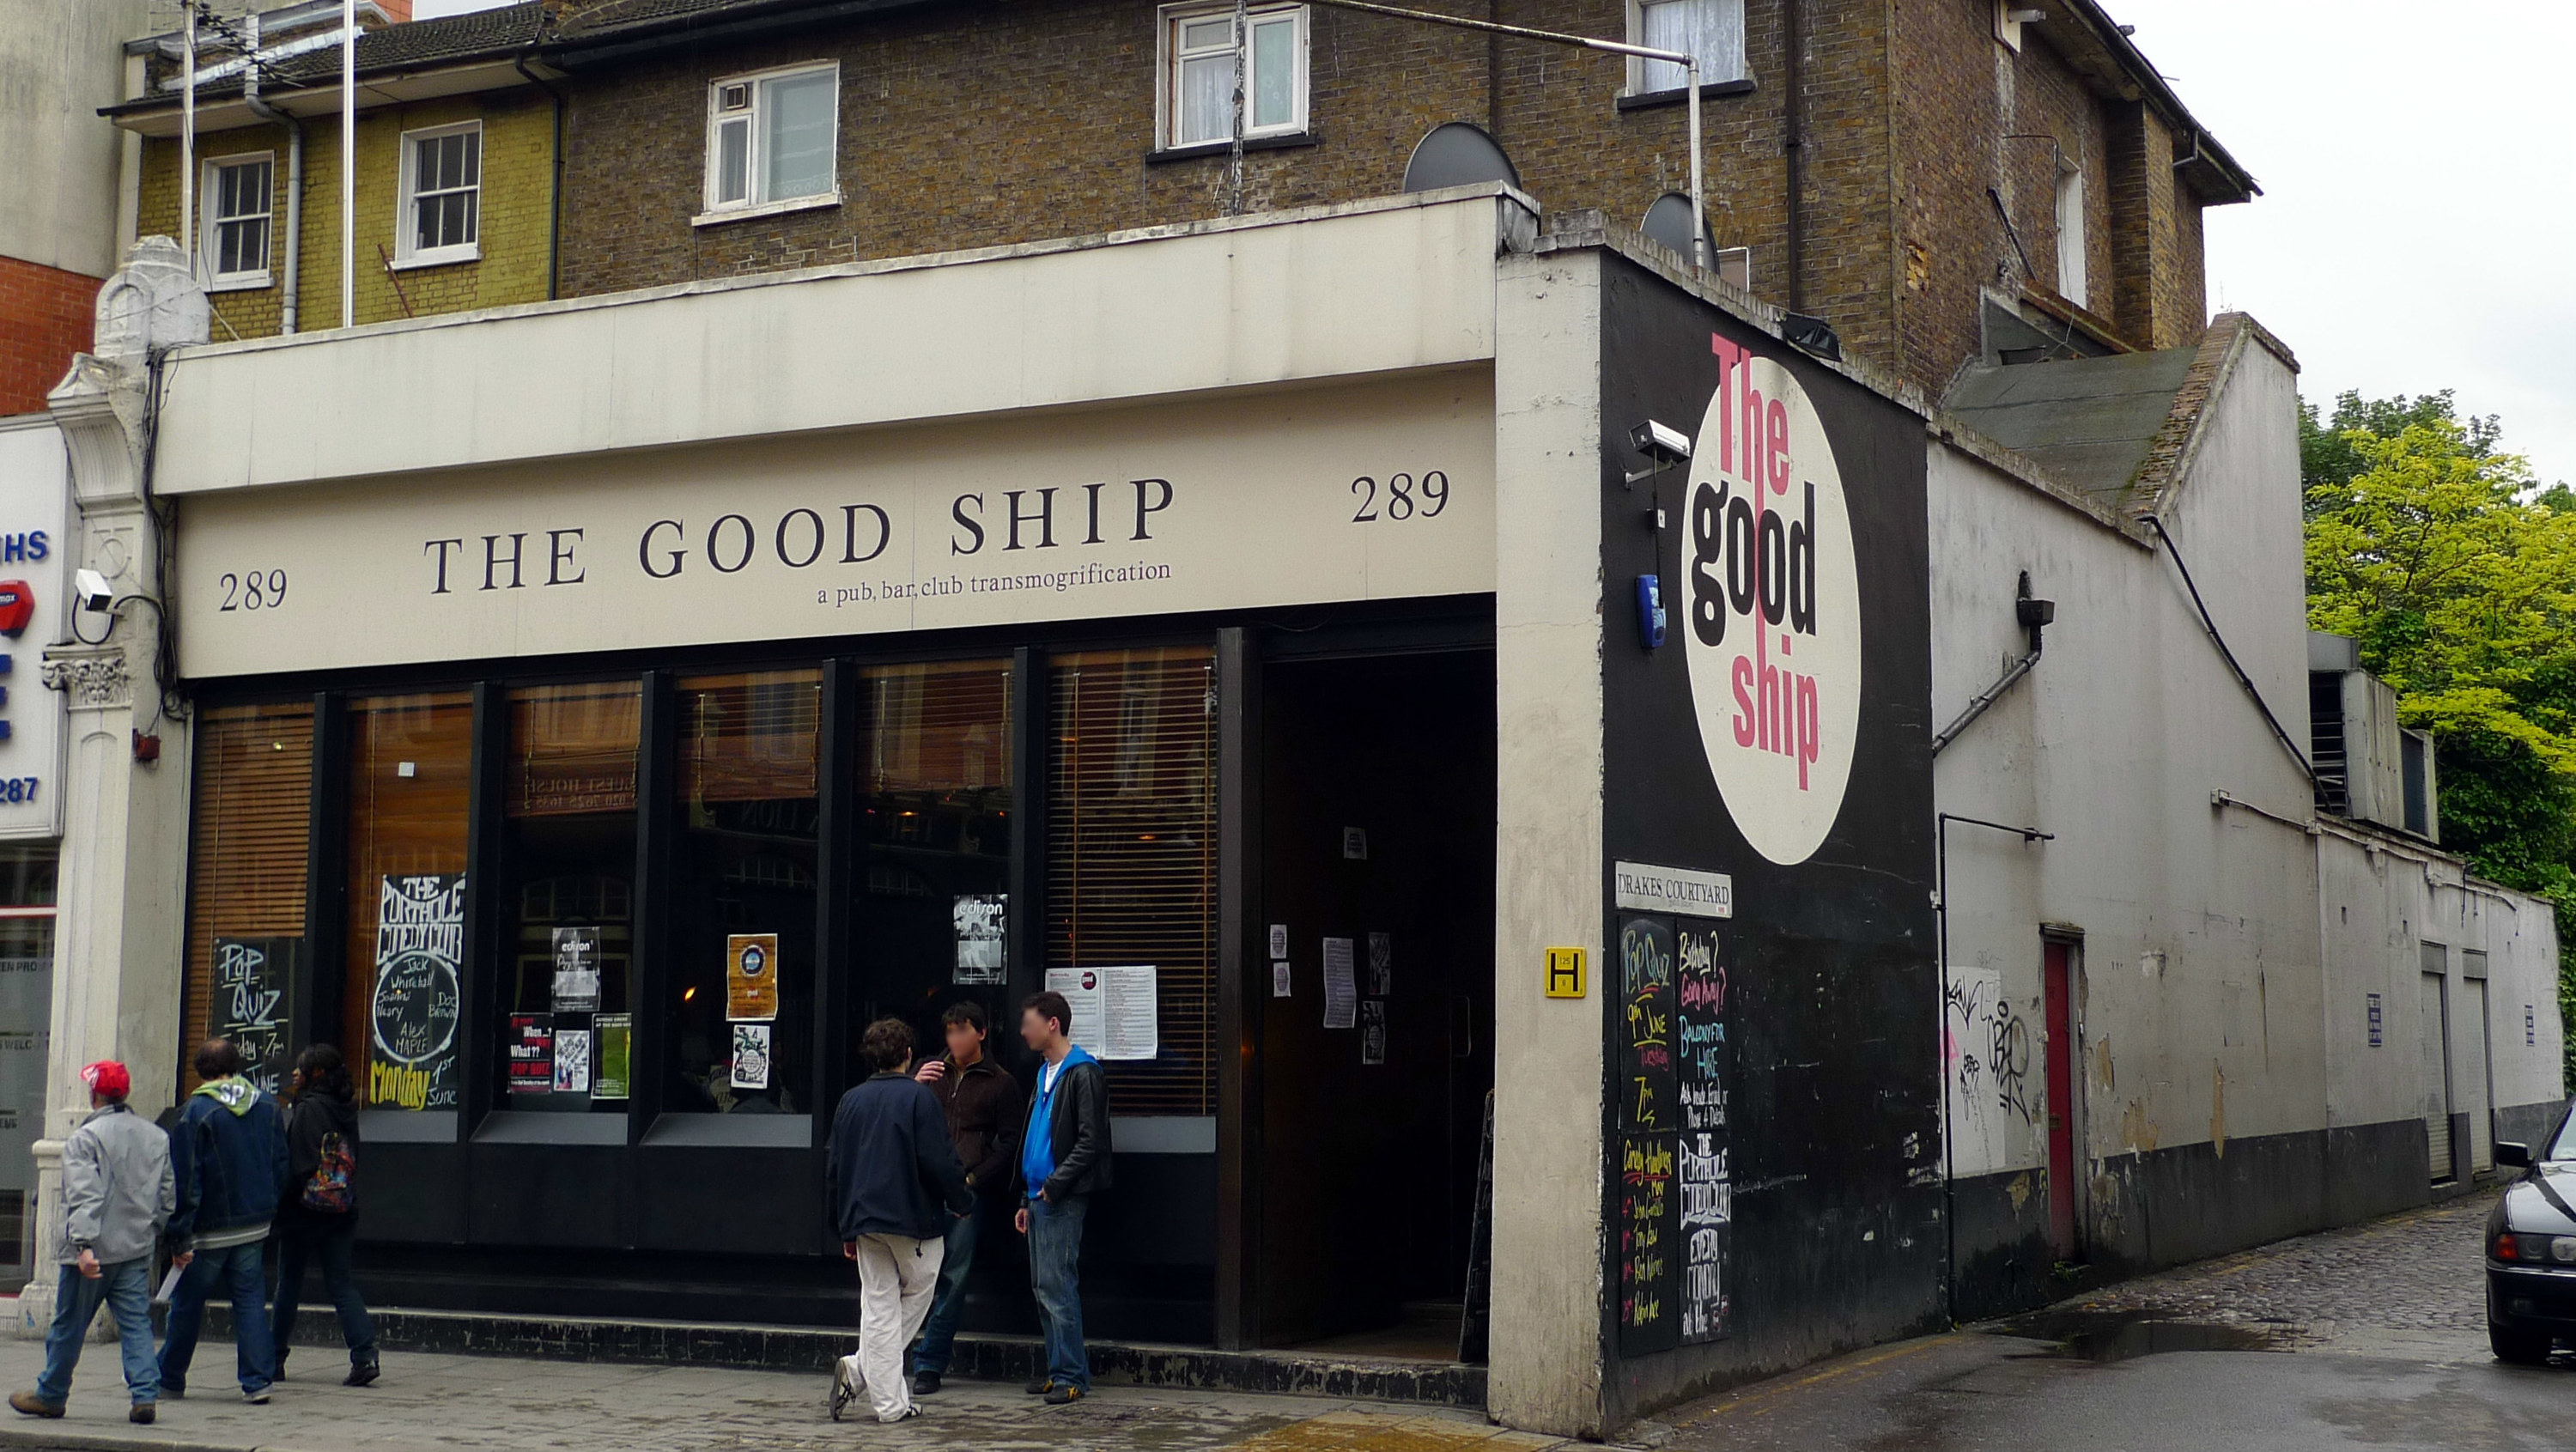 Kilburn risks losing its last remaining music venue